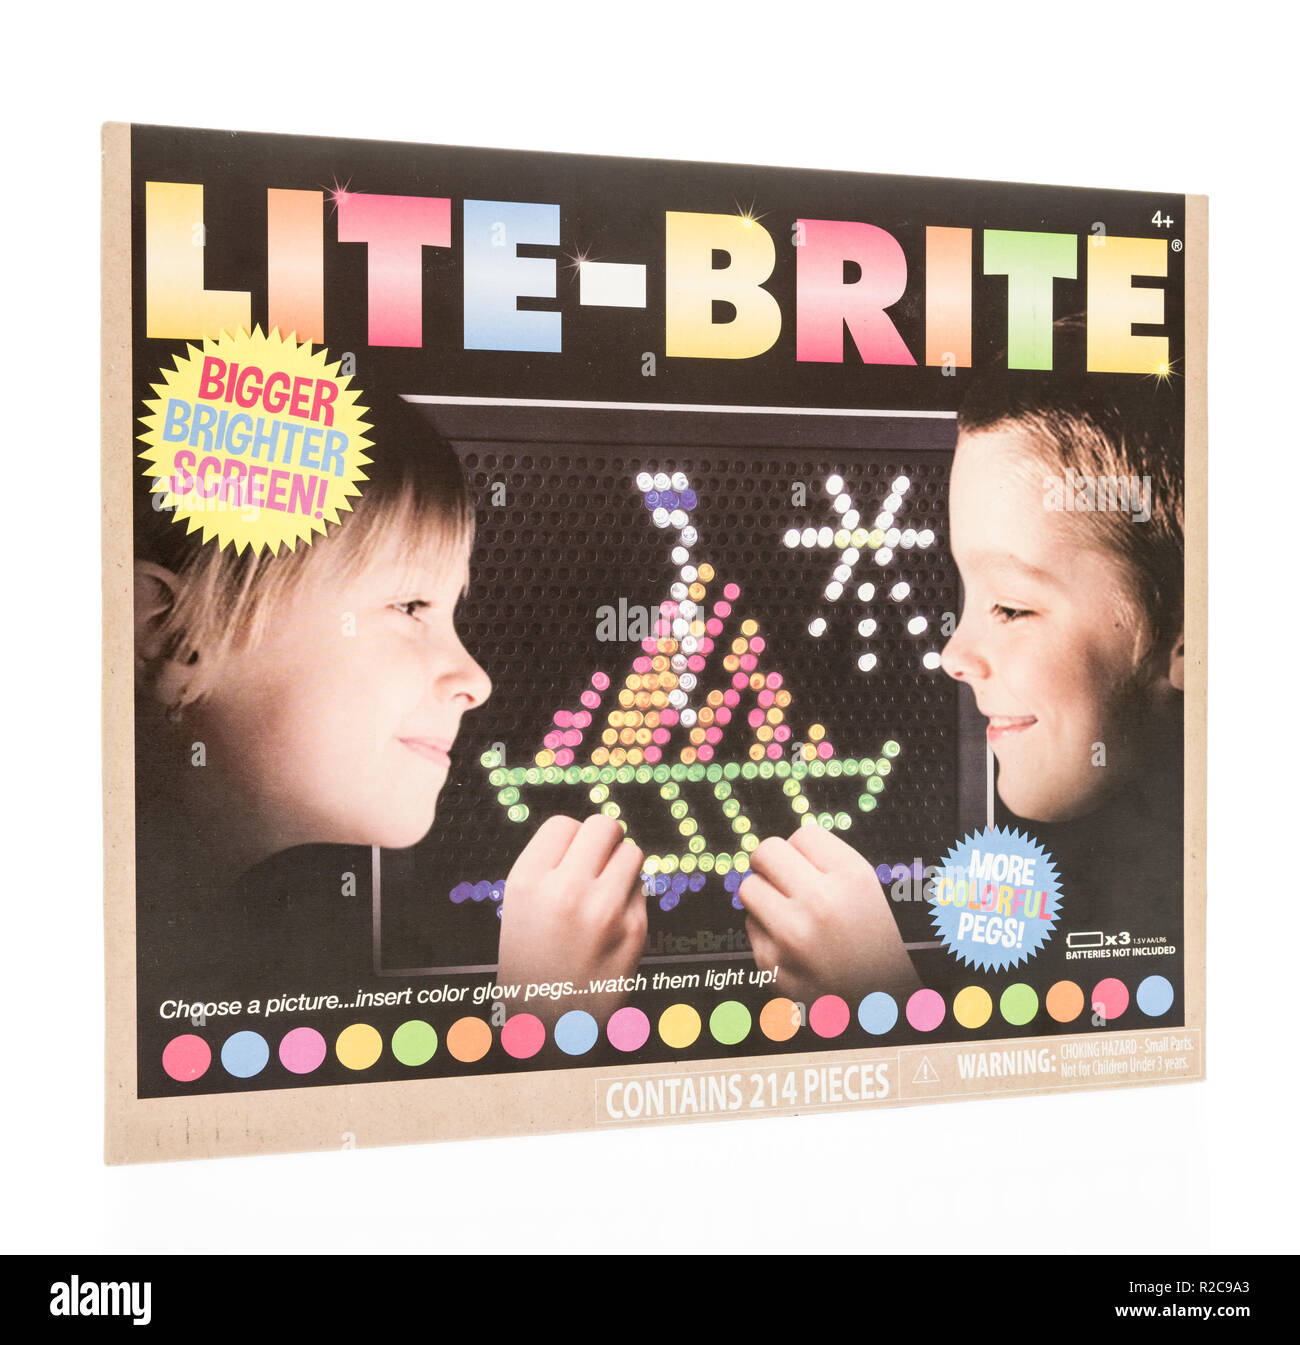 Winneconne, WI - 4 November 2018: A package of a Lite-Brite with a bigger and brighter screen on an isolated background. Stock Photo